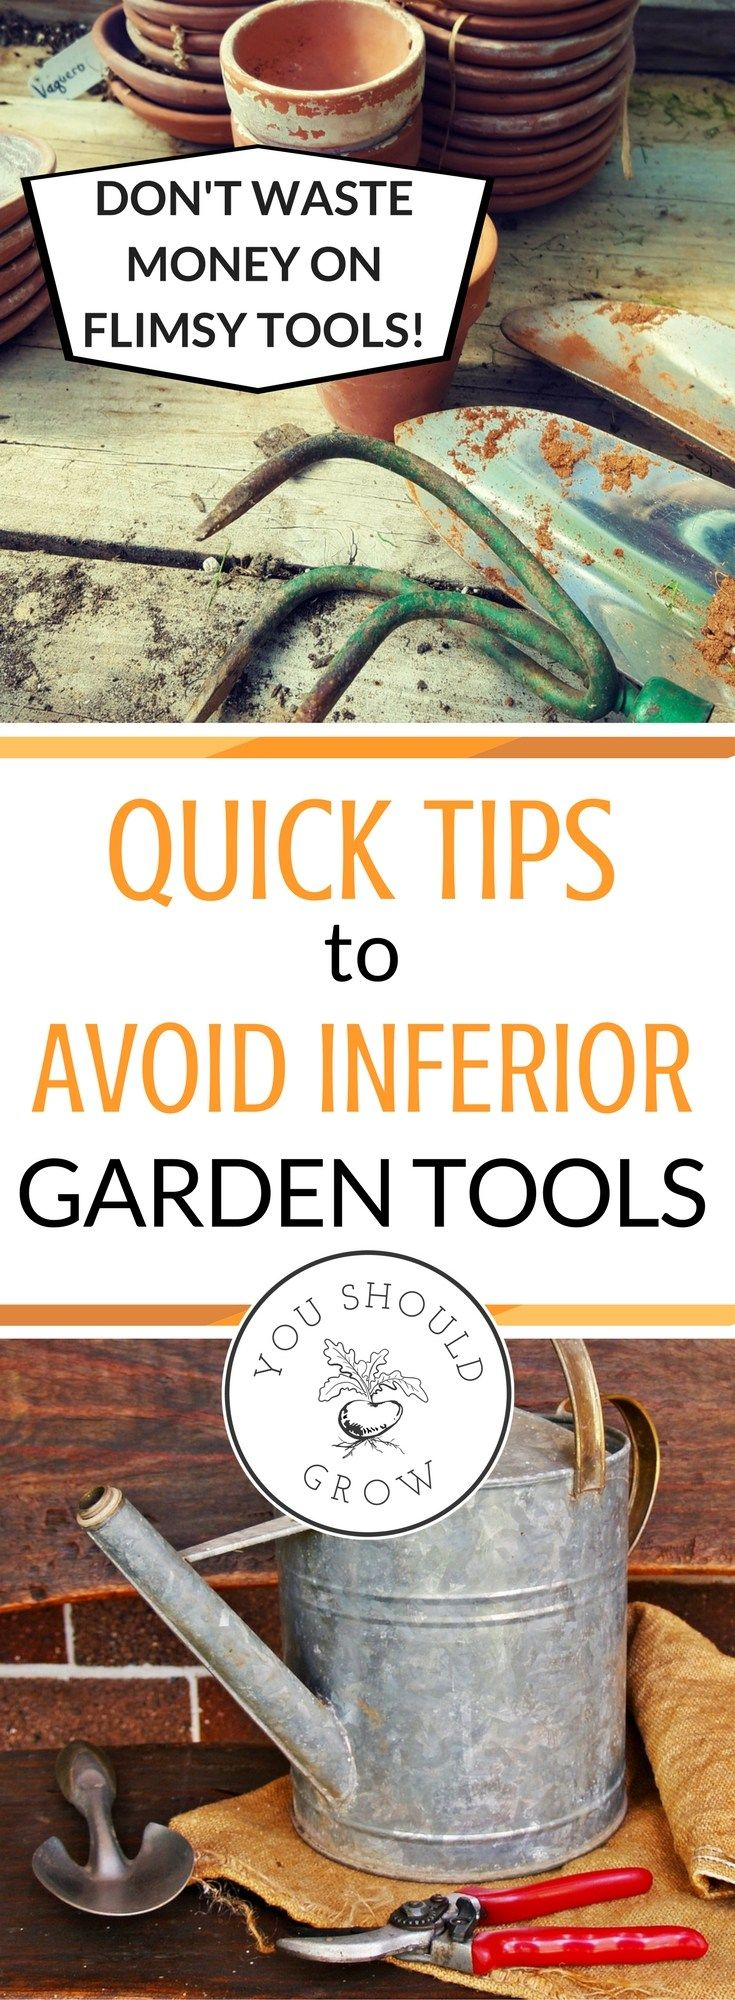 15 Best Cheap Tools Images On Pinterest Bricolage Electrical Outlet 4 Prong For Wiring A Stove Http Www Hammerzone Com Having Quality Garden Makes All The Difference Make Your Work Harder